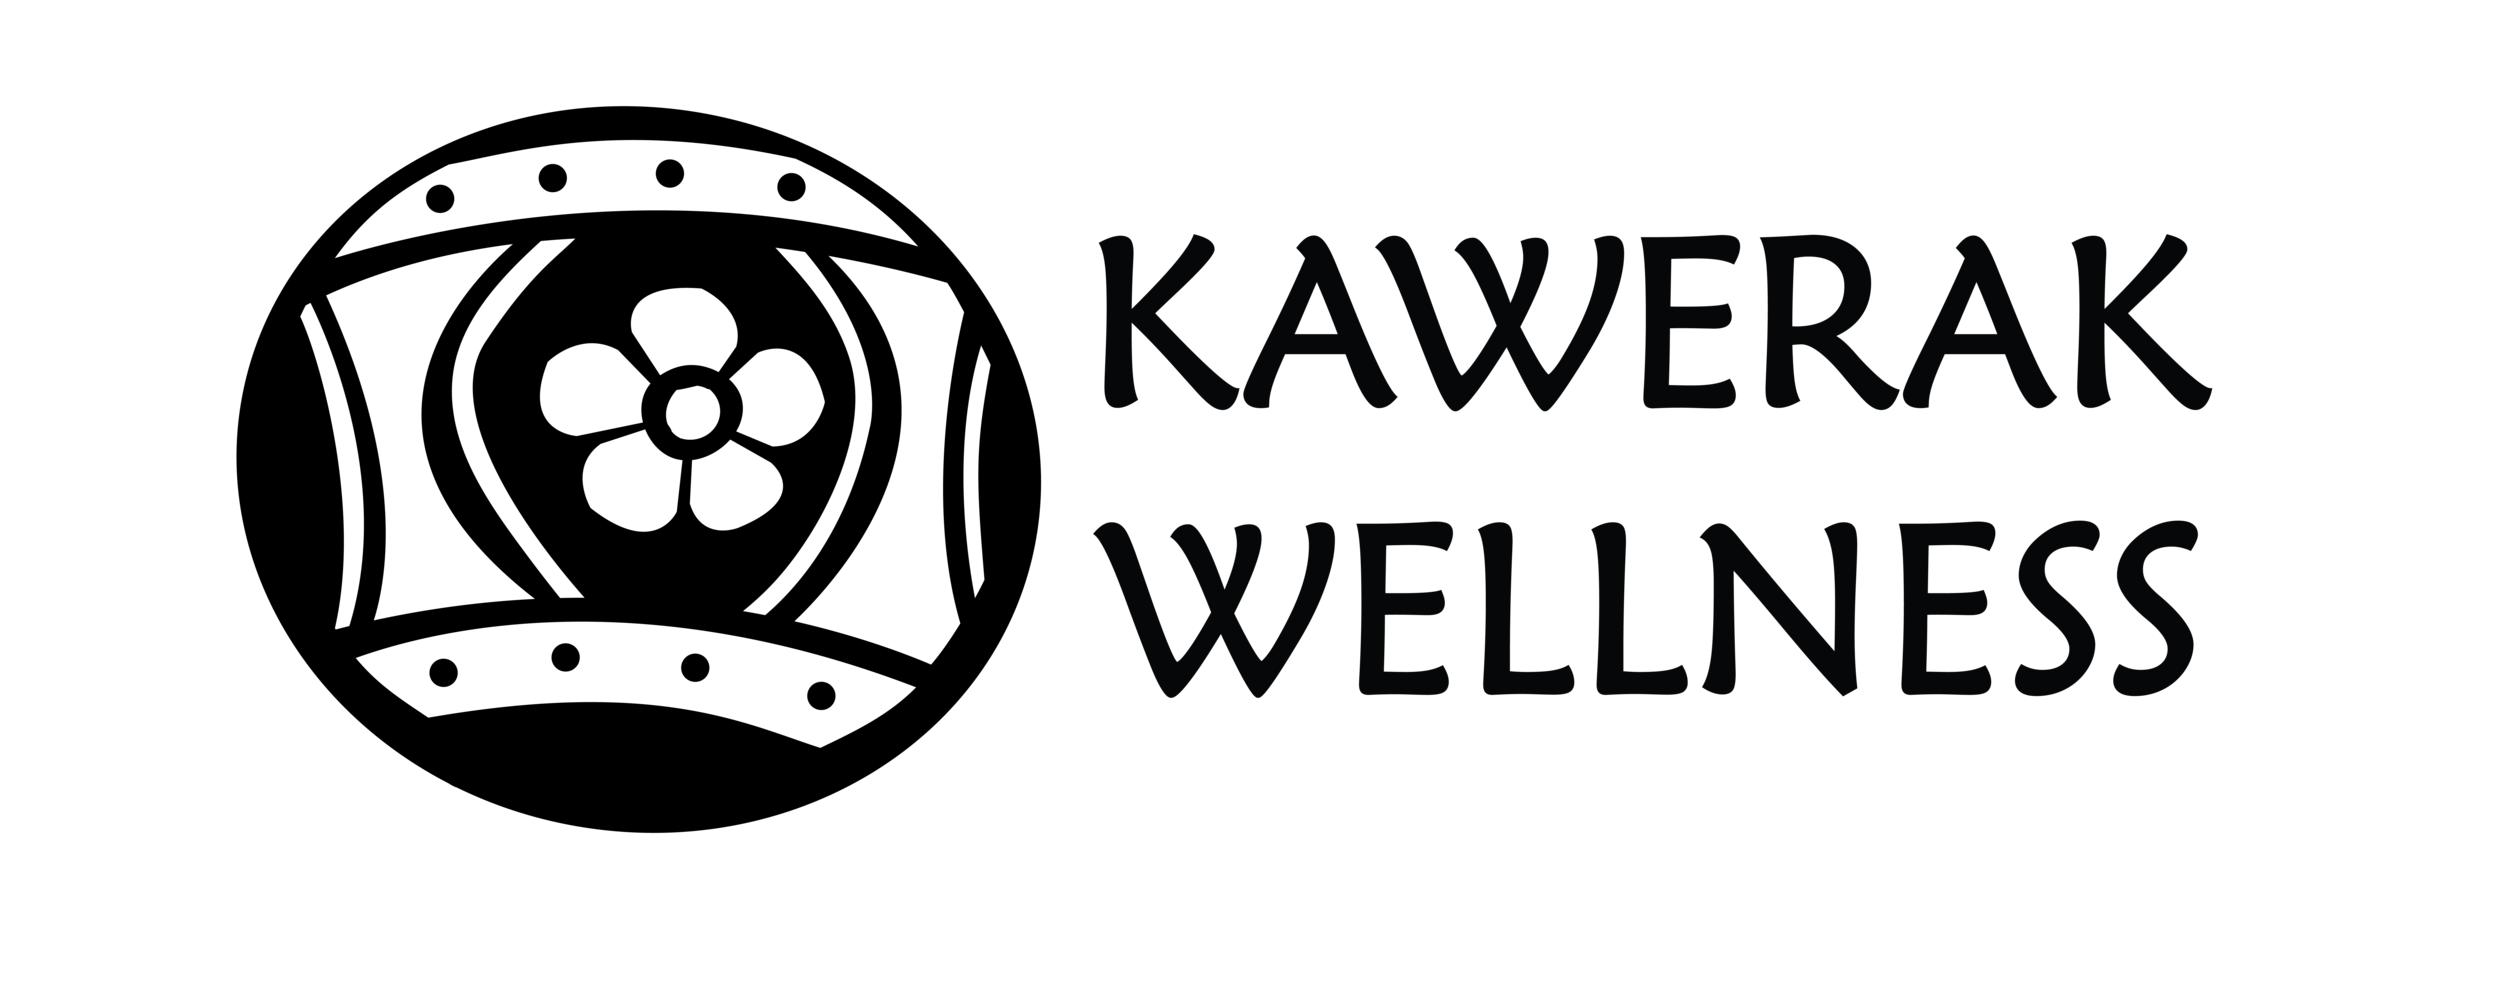 Kawerak Inc. High Res Logo.png